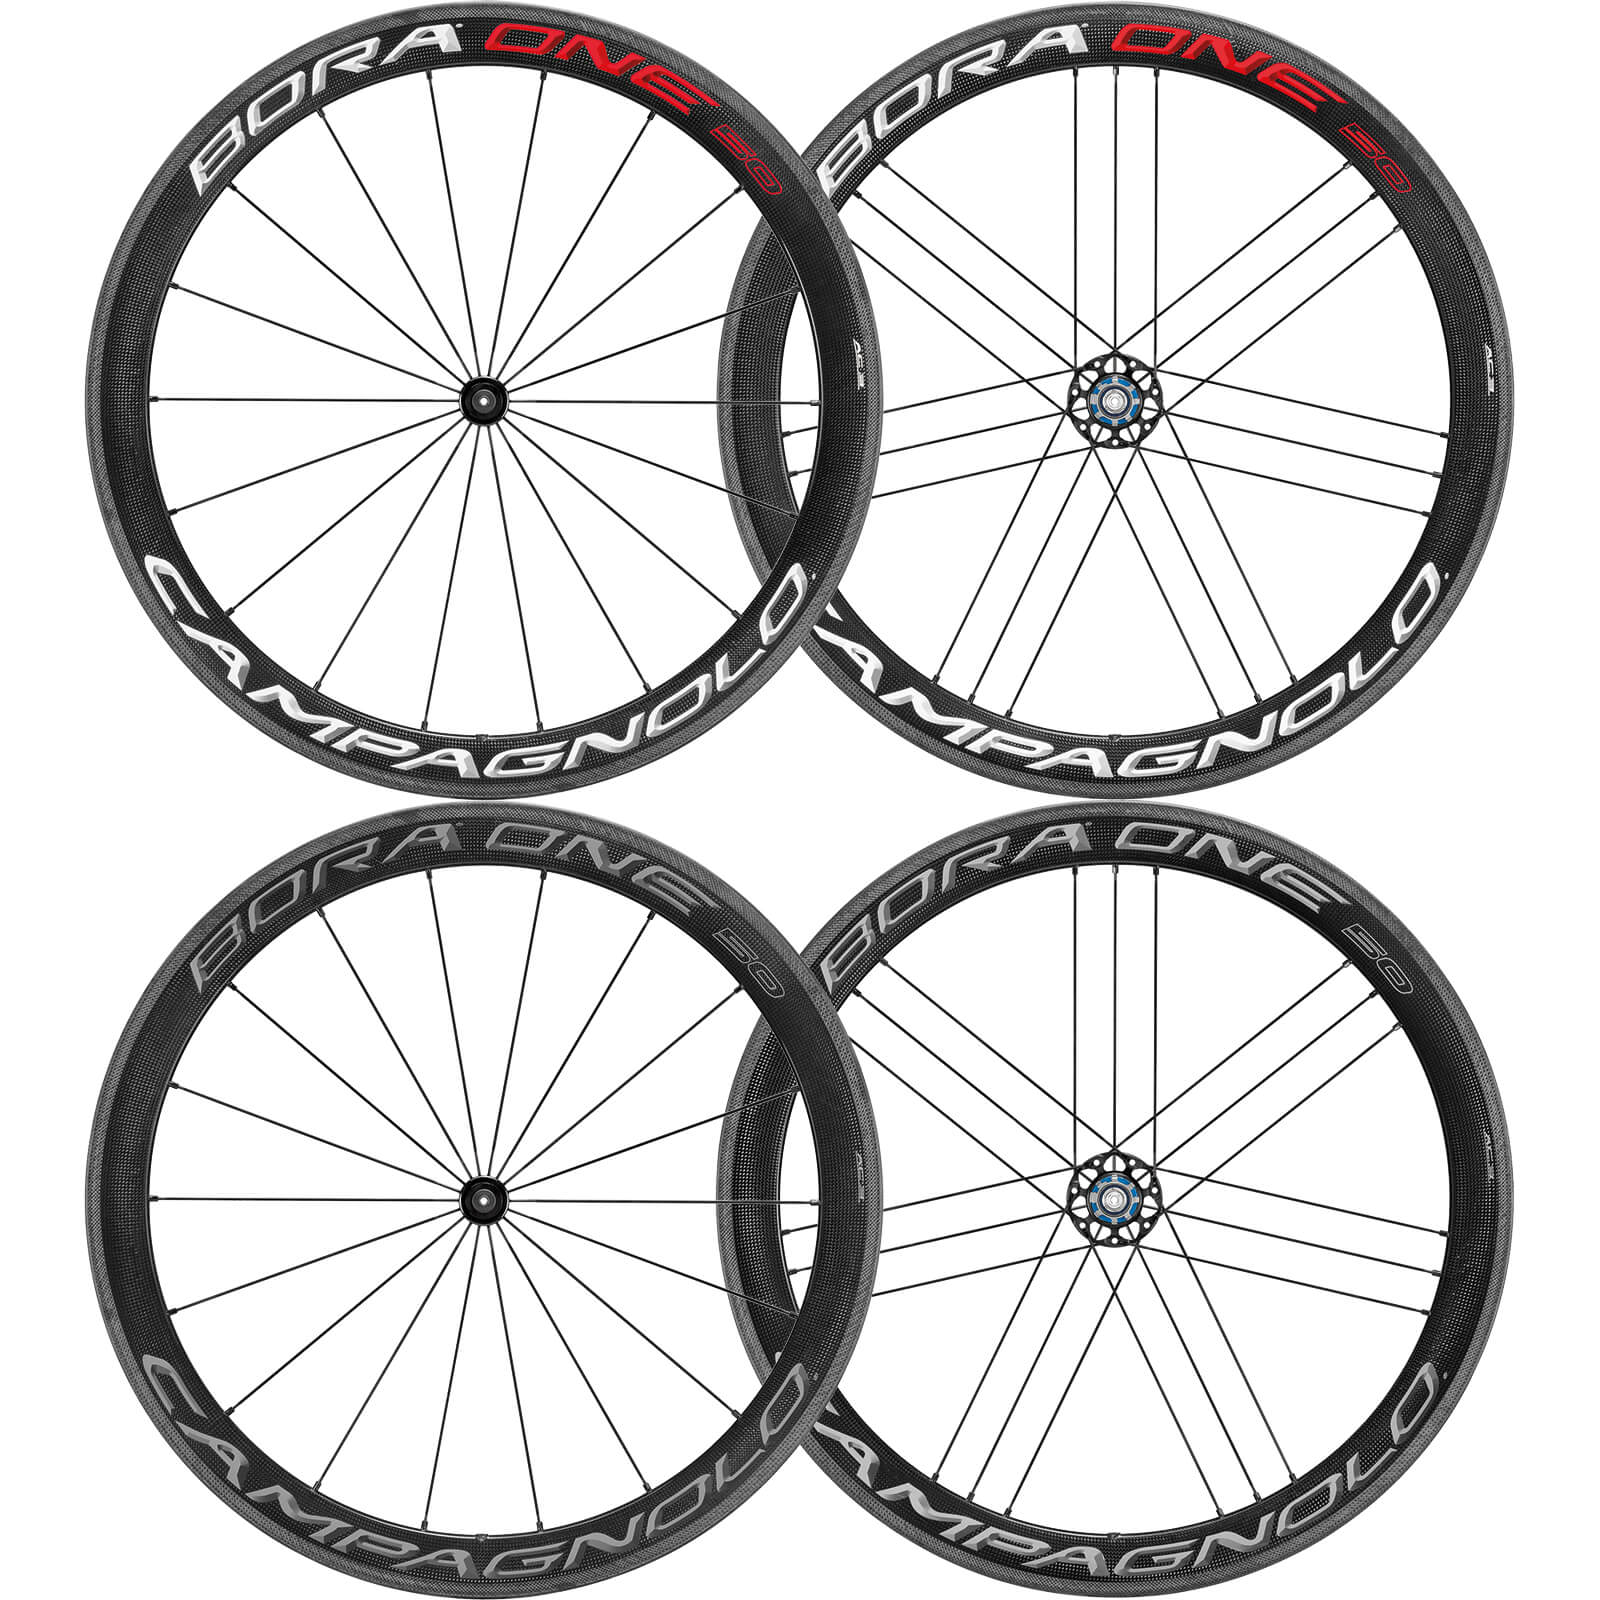 CAMPAGNOLO BORA ONE(ボーラワン) 50 クリンチャー ホイールセット 2018